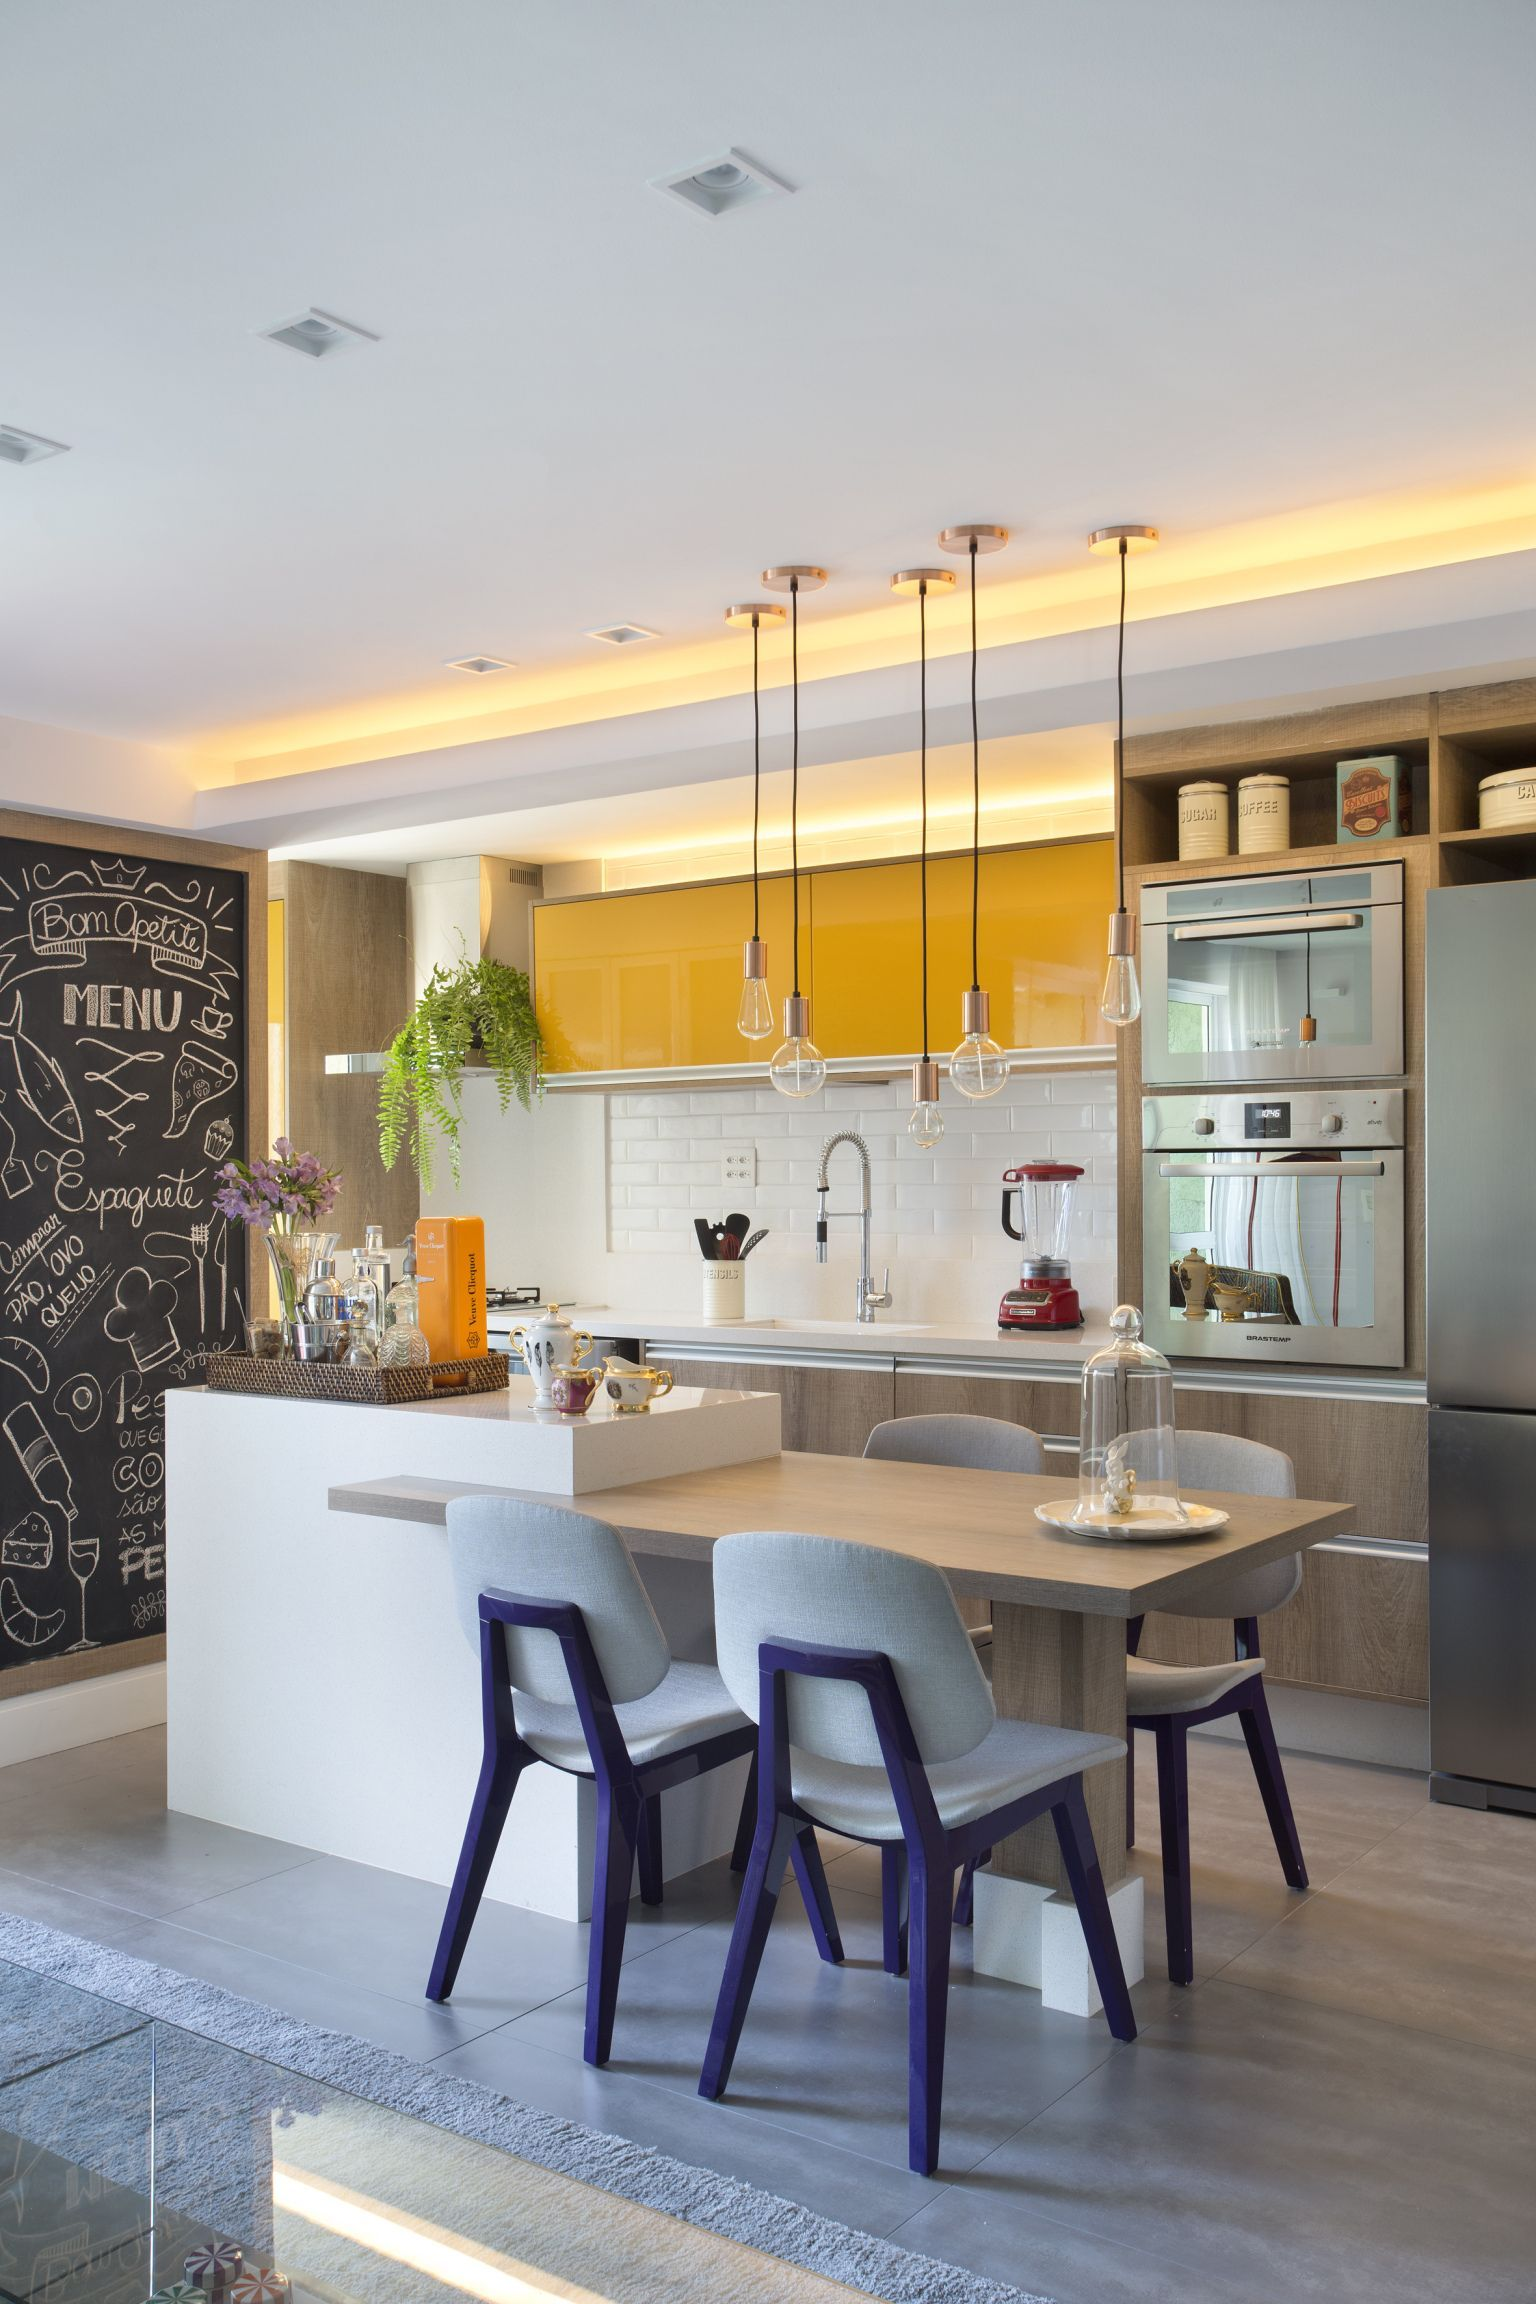 6 Modern Small Kitchen Ideas That Will Give a Big Impact on Your Daily Mood #smallkitchendecor